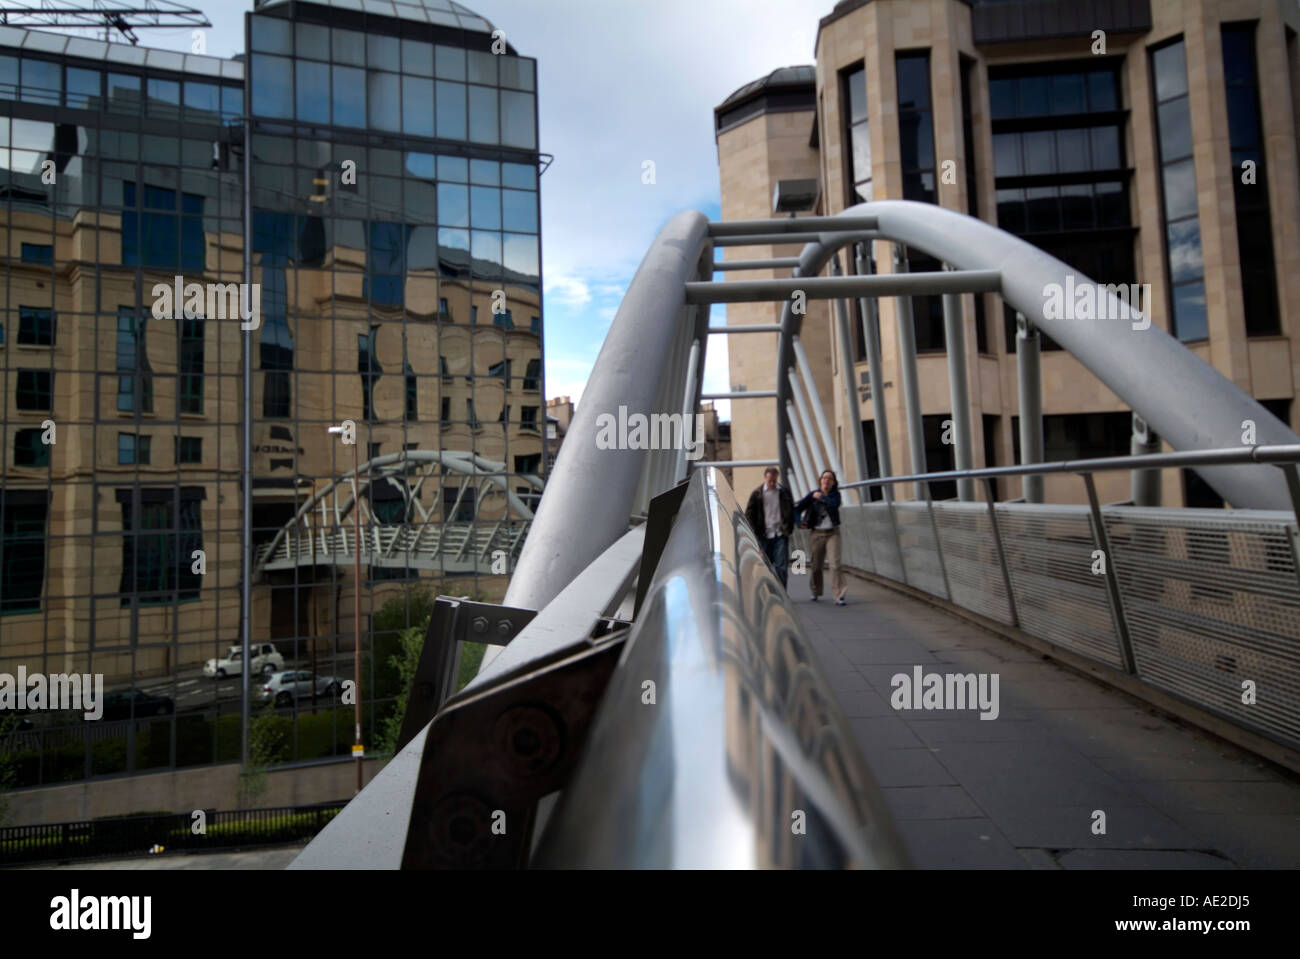 21st century Edinburgh - Stock Image